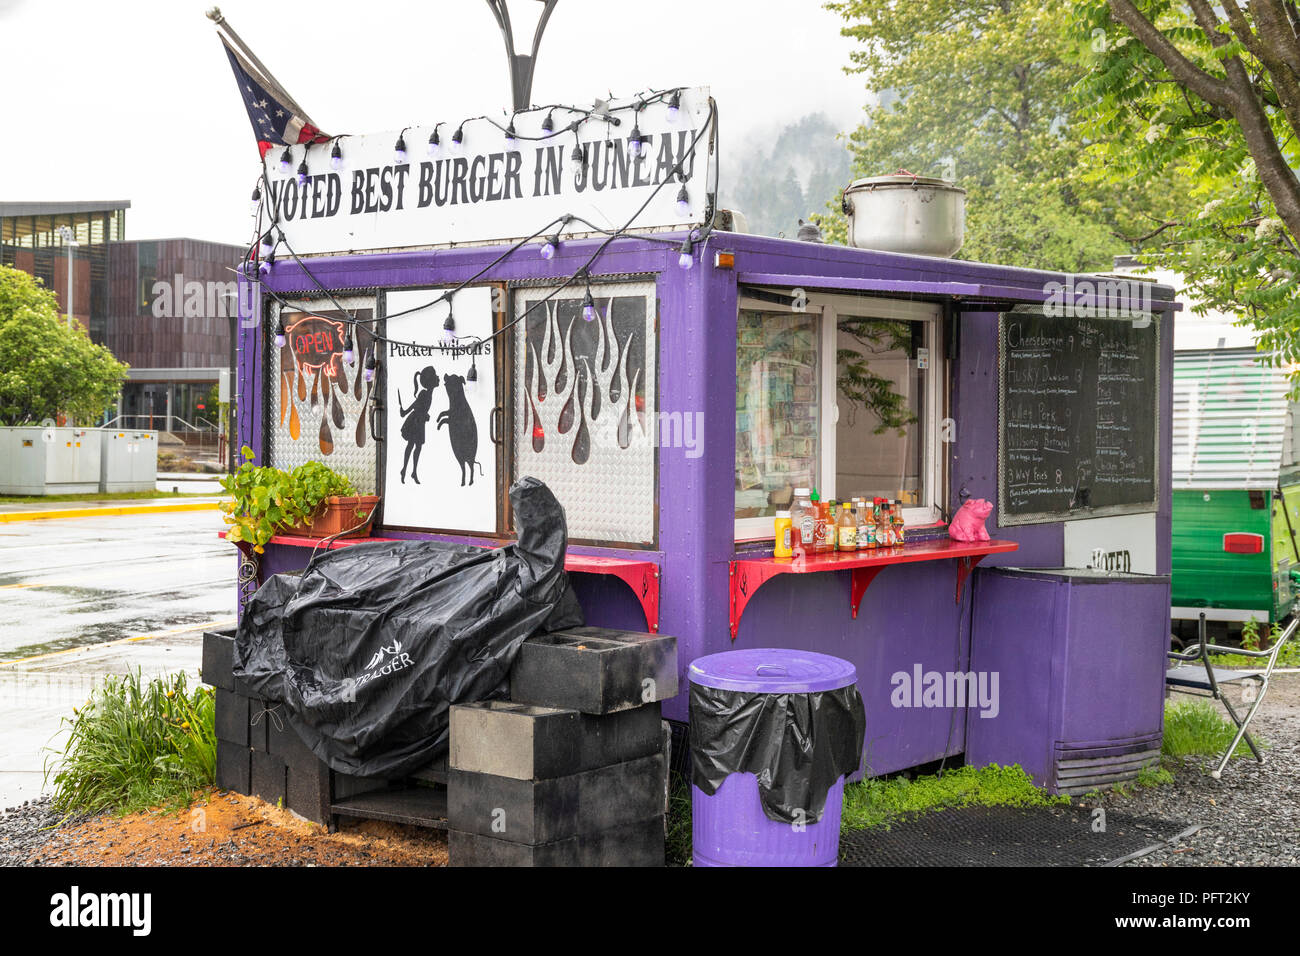 Best burger in town outlet on a rather wet day in Juneau the capital city of Alaska, USA - Stock Image